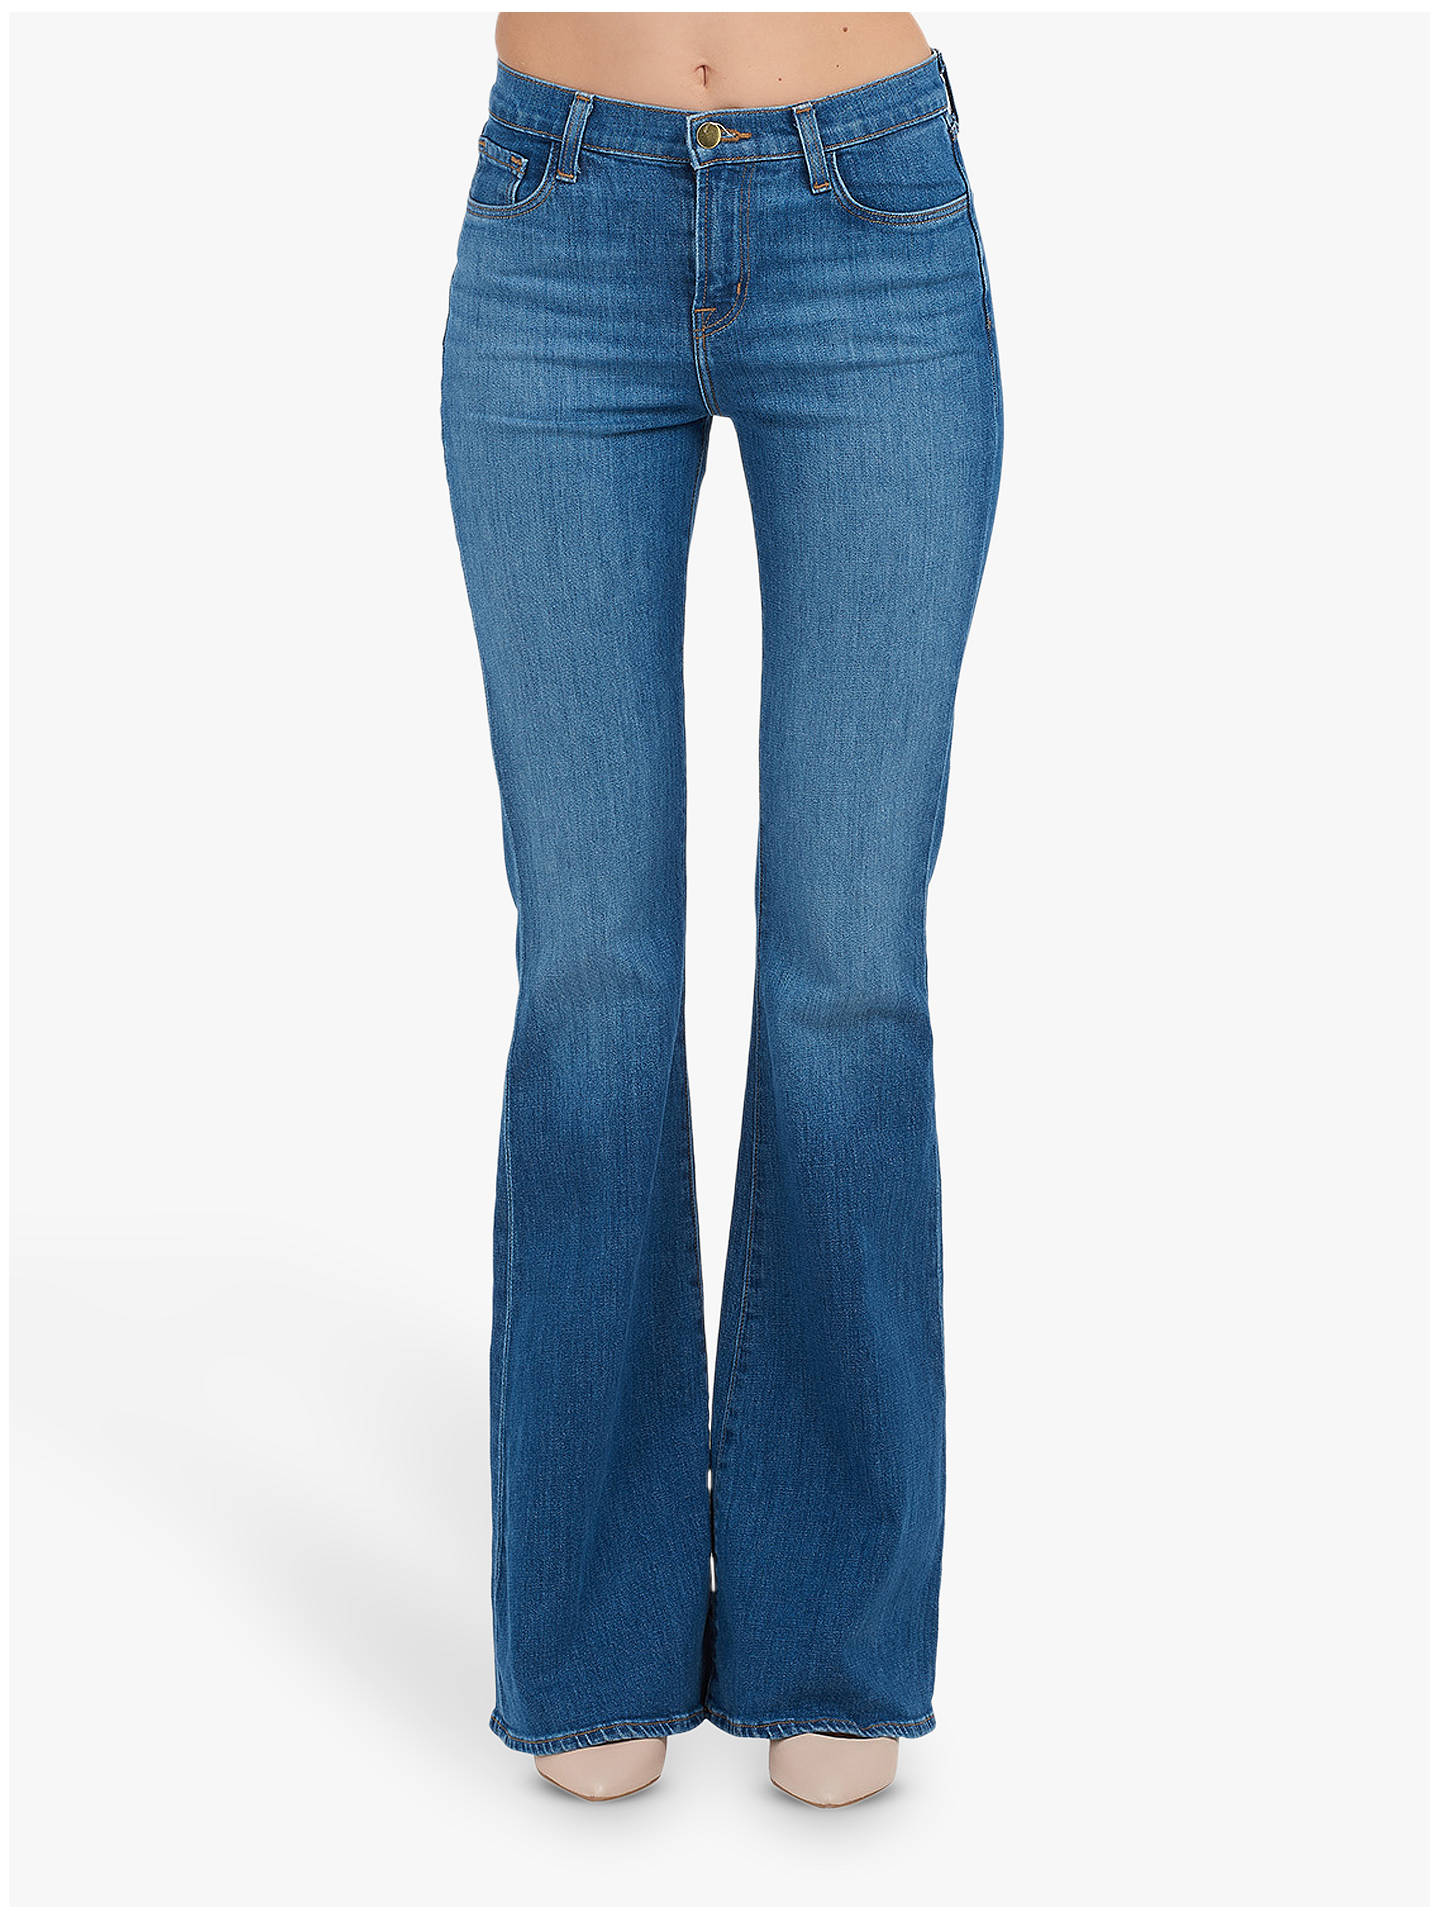 Buy J Brand Valentina High Rise Flare Jeans, Endeavor, 24 Online at johnlewis.com